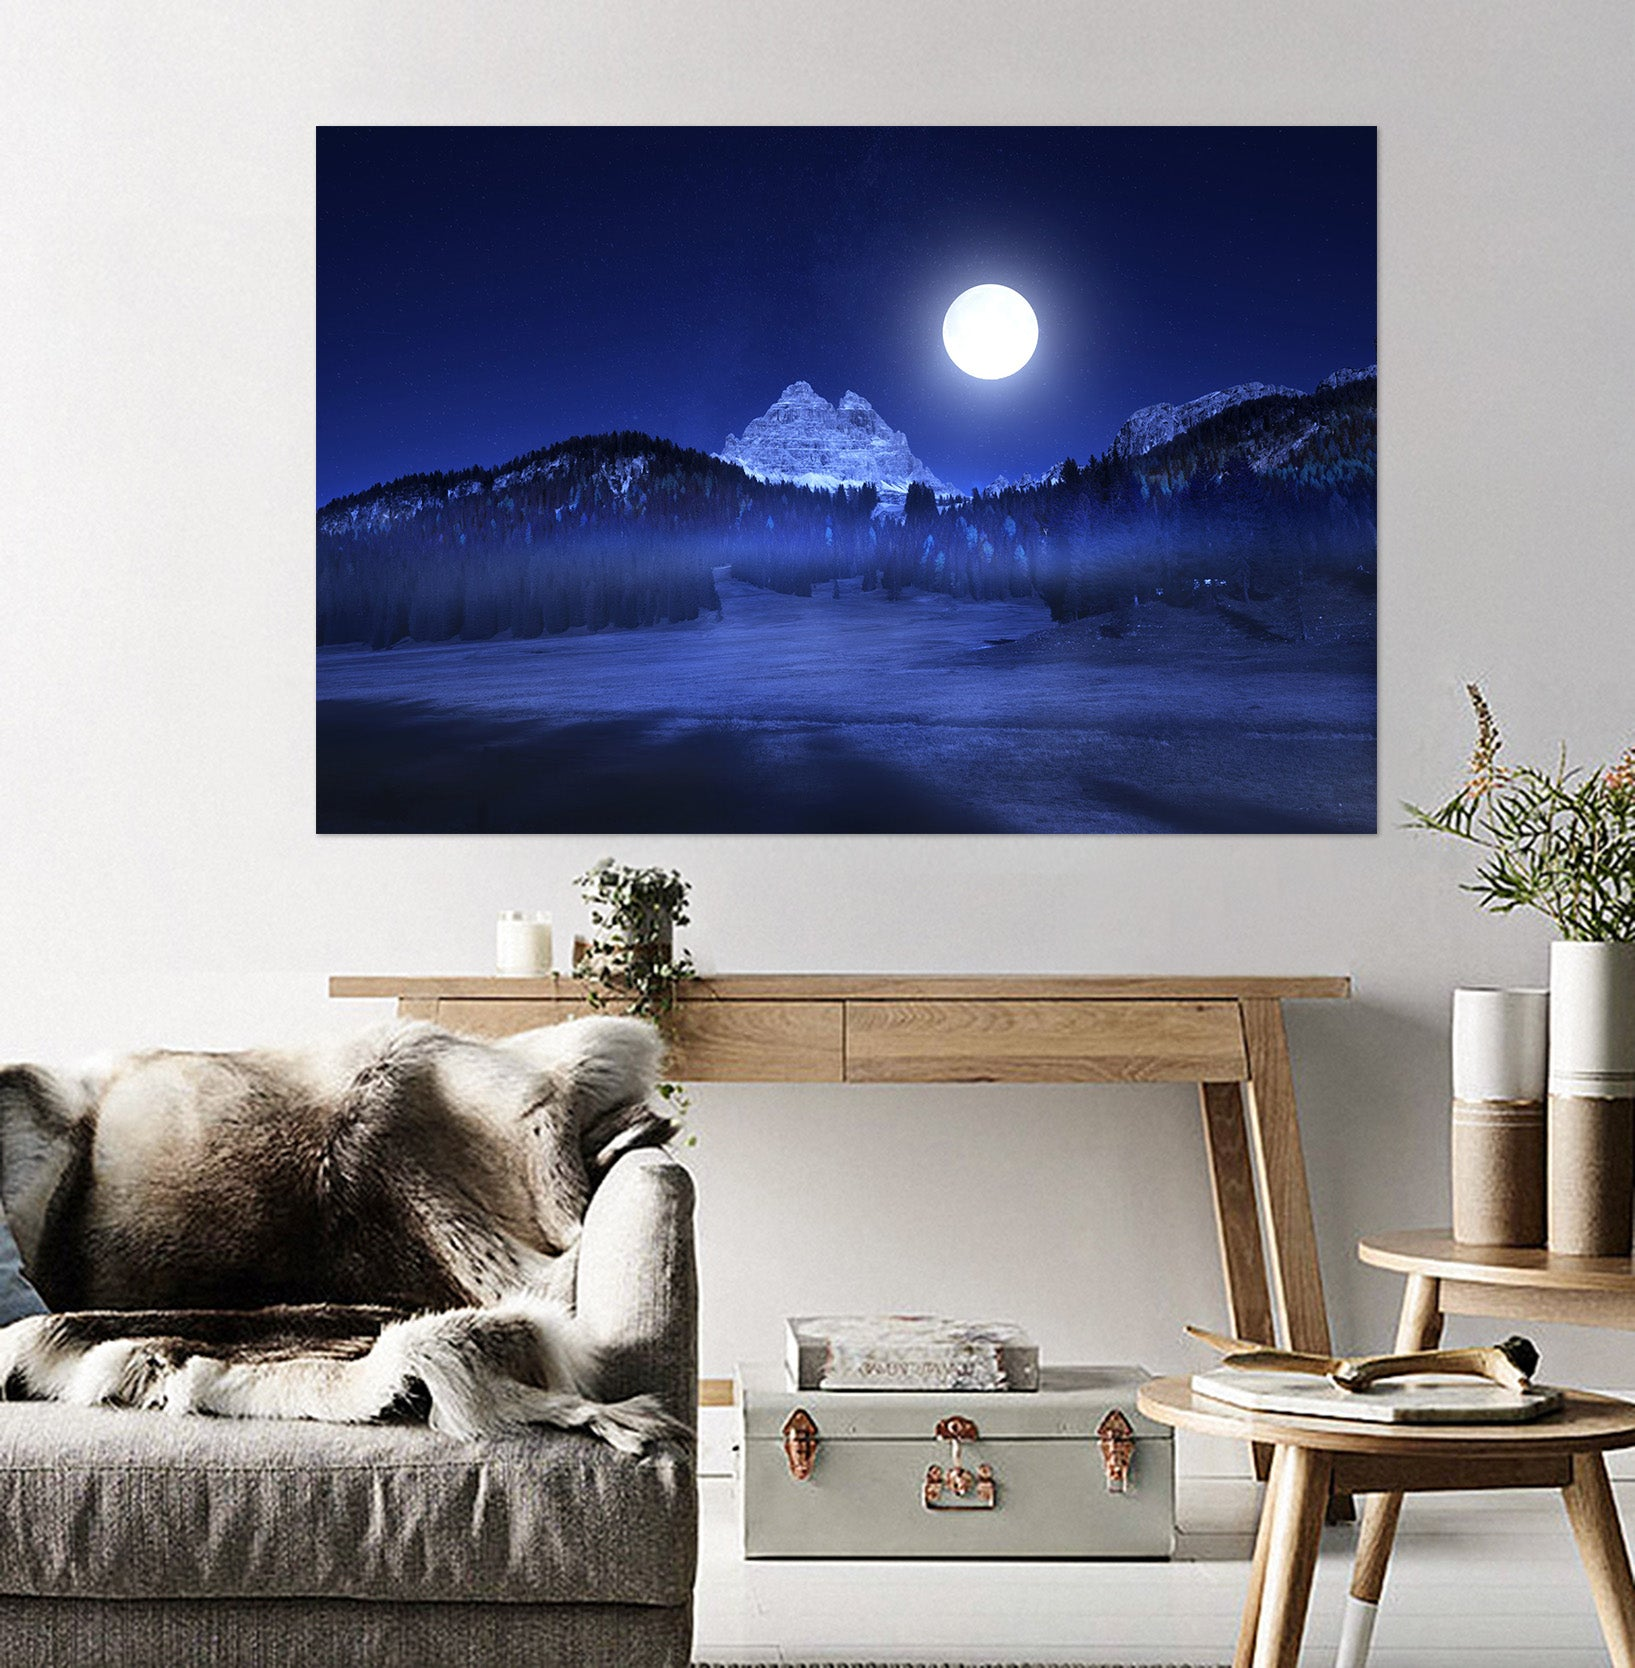 3D Silent Valley 217 Marco Carmassi Wall Sticker